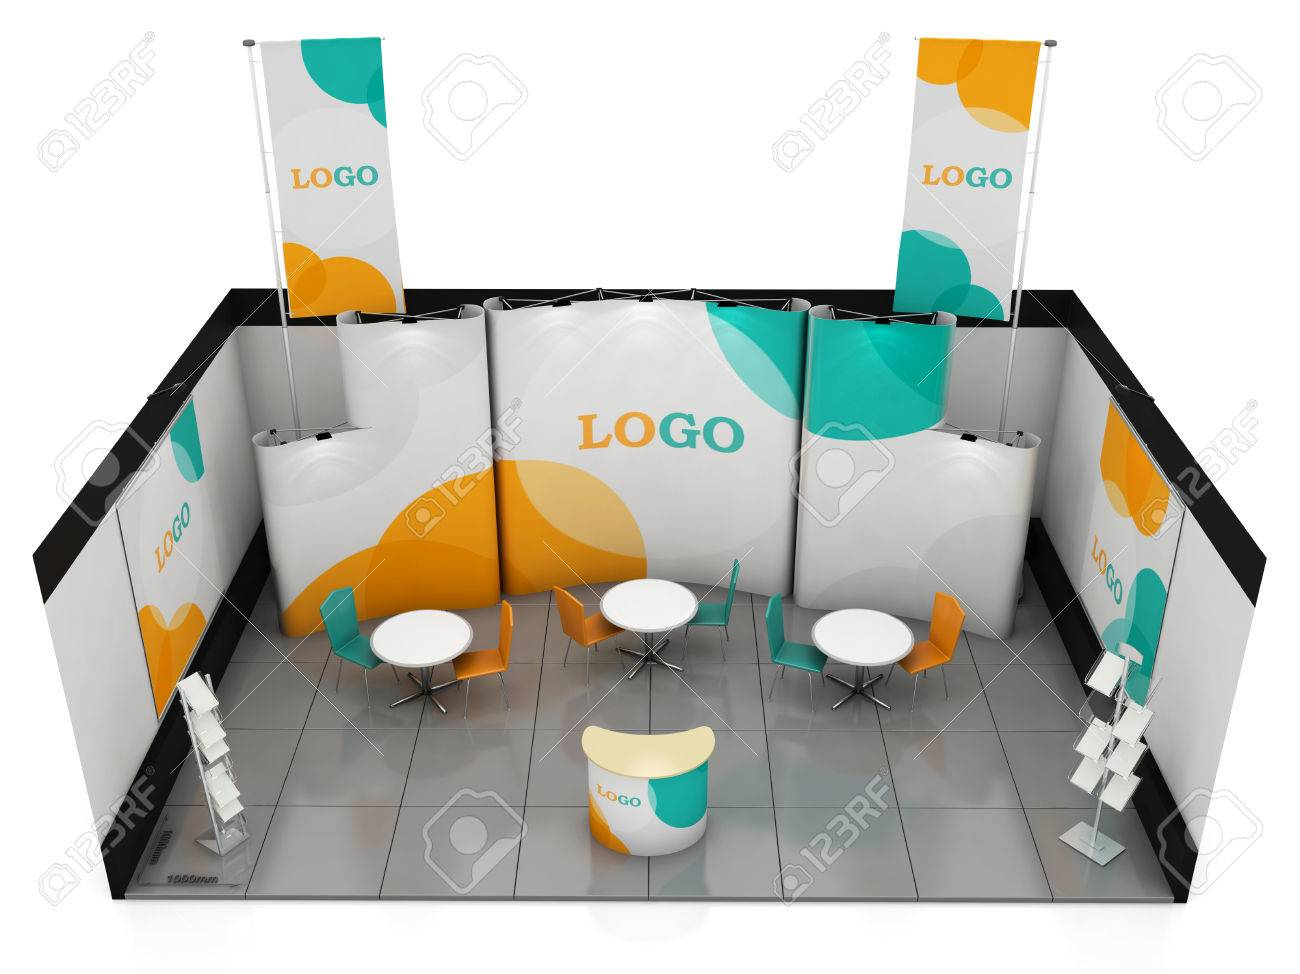 Exhibition Stand Or Booth : Blank creative exhibition stand design with color shapes booth